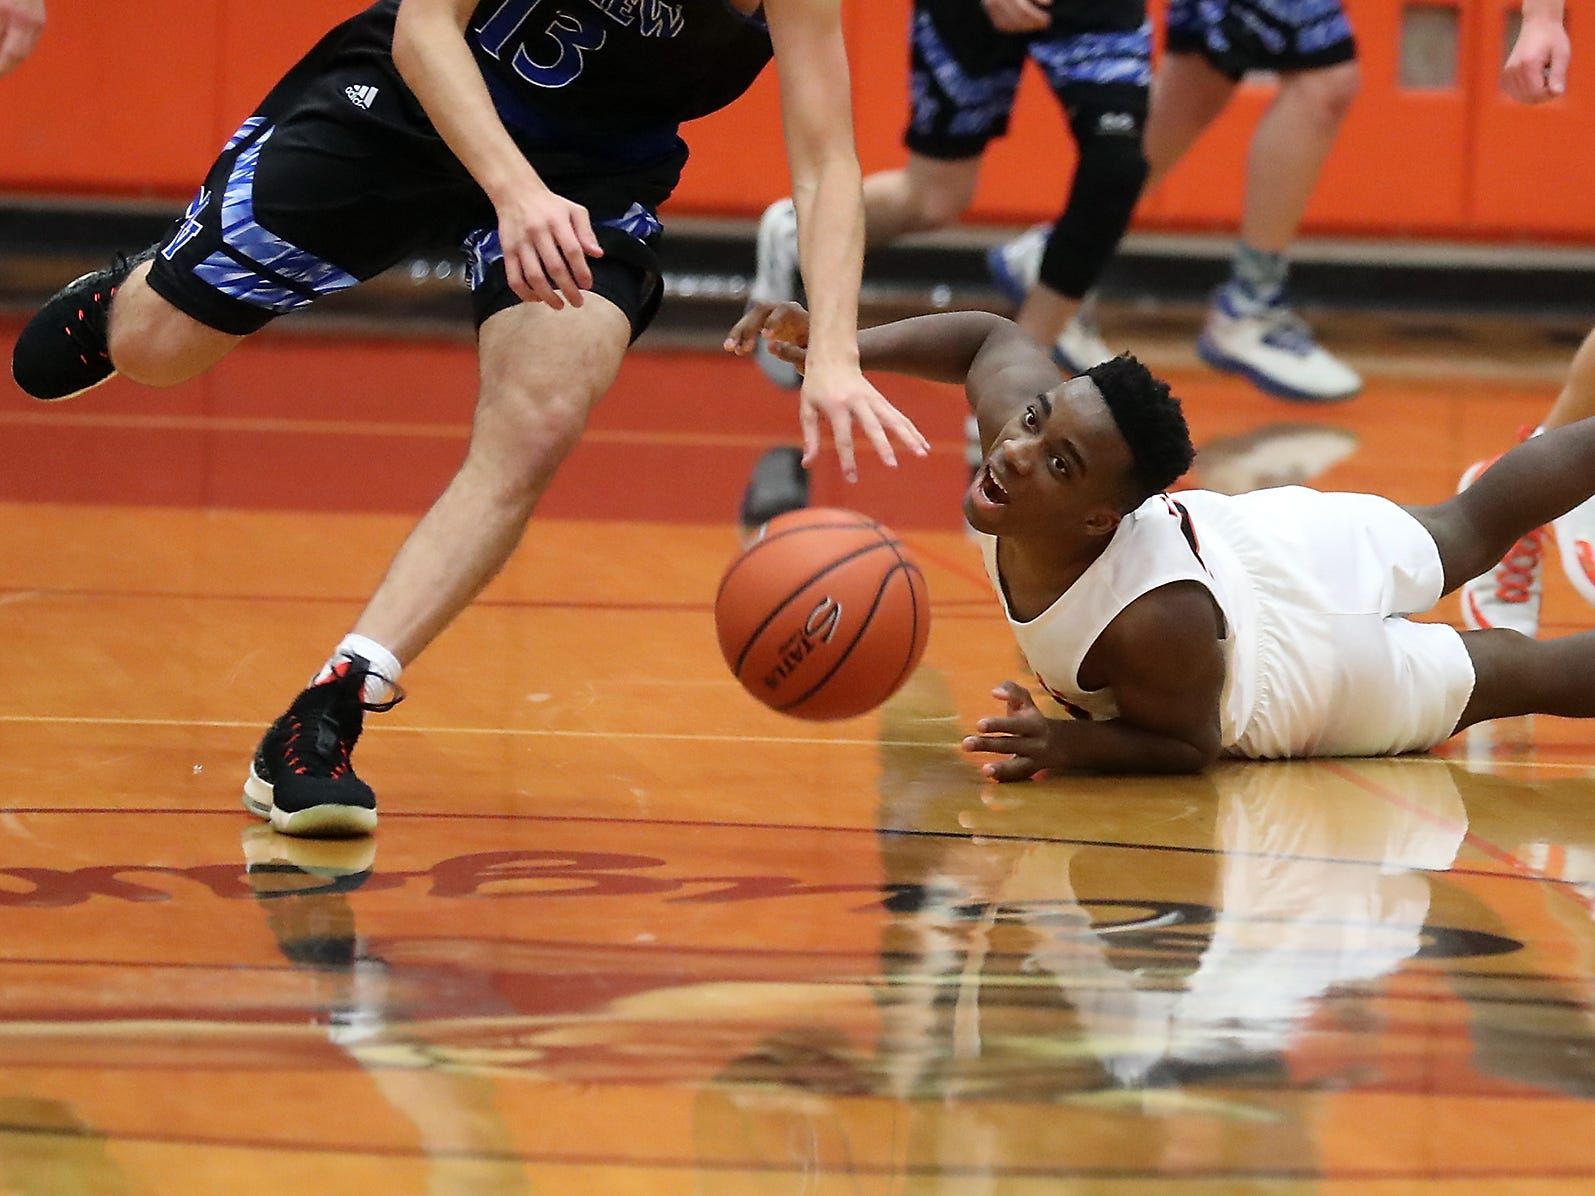 Central Kitsap's Elijah McGee hits the floor after making a dove for a loose ball- that was picked up by Mountain View's Sam Frosh - during the second half of their game in Silverdale on Wednesday, February 6, 2019.